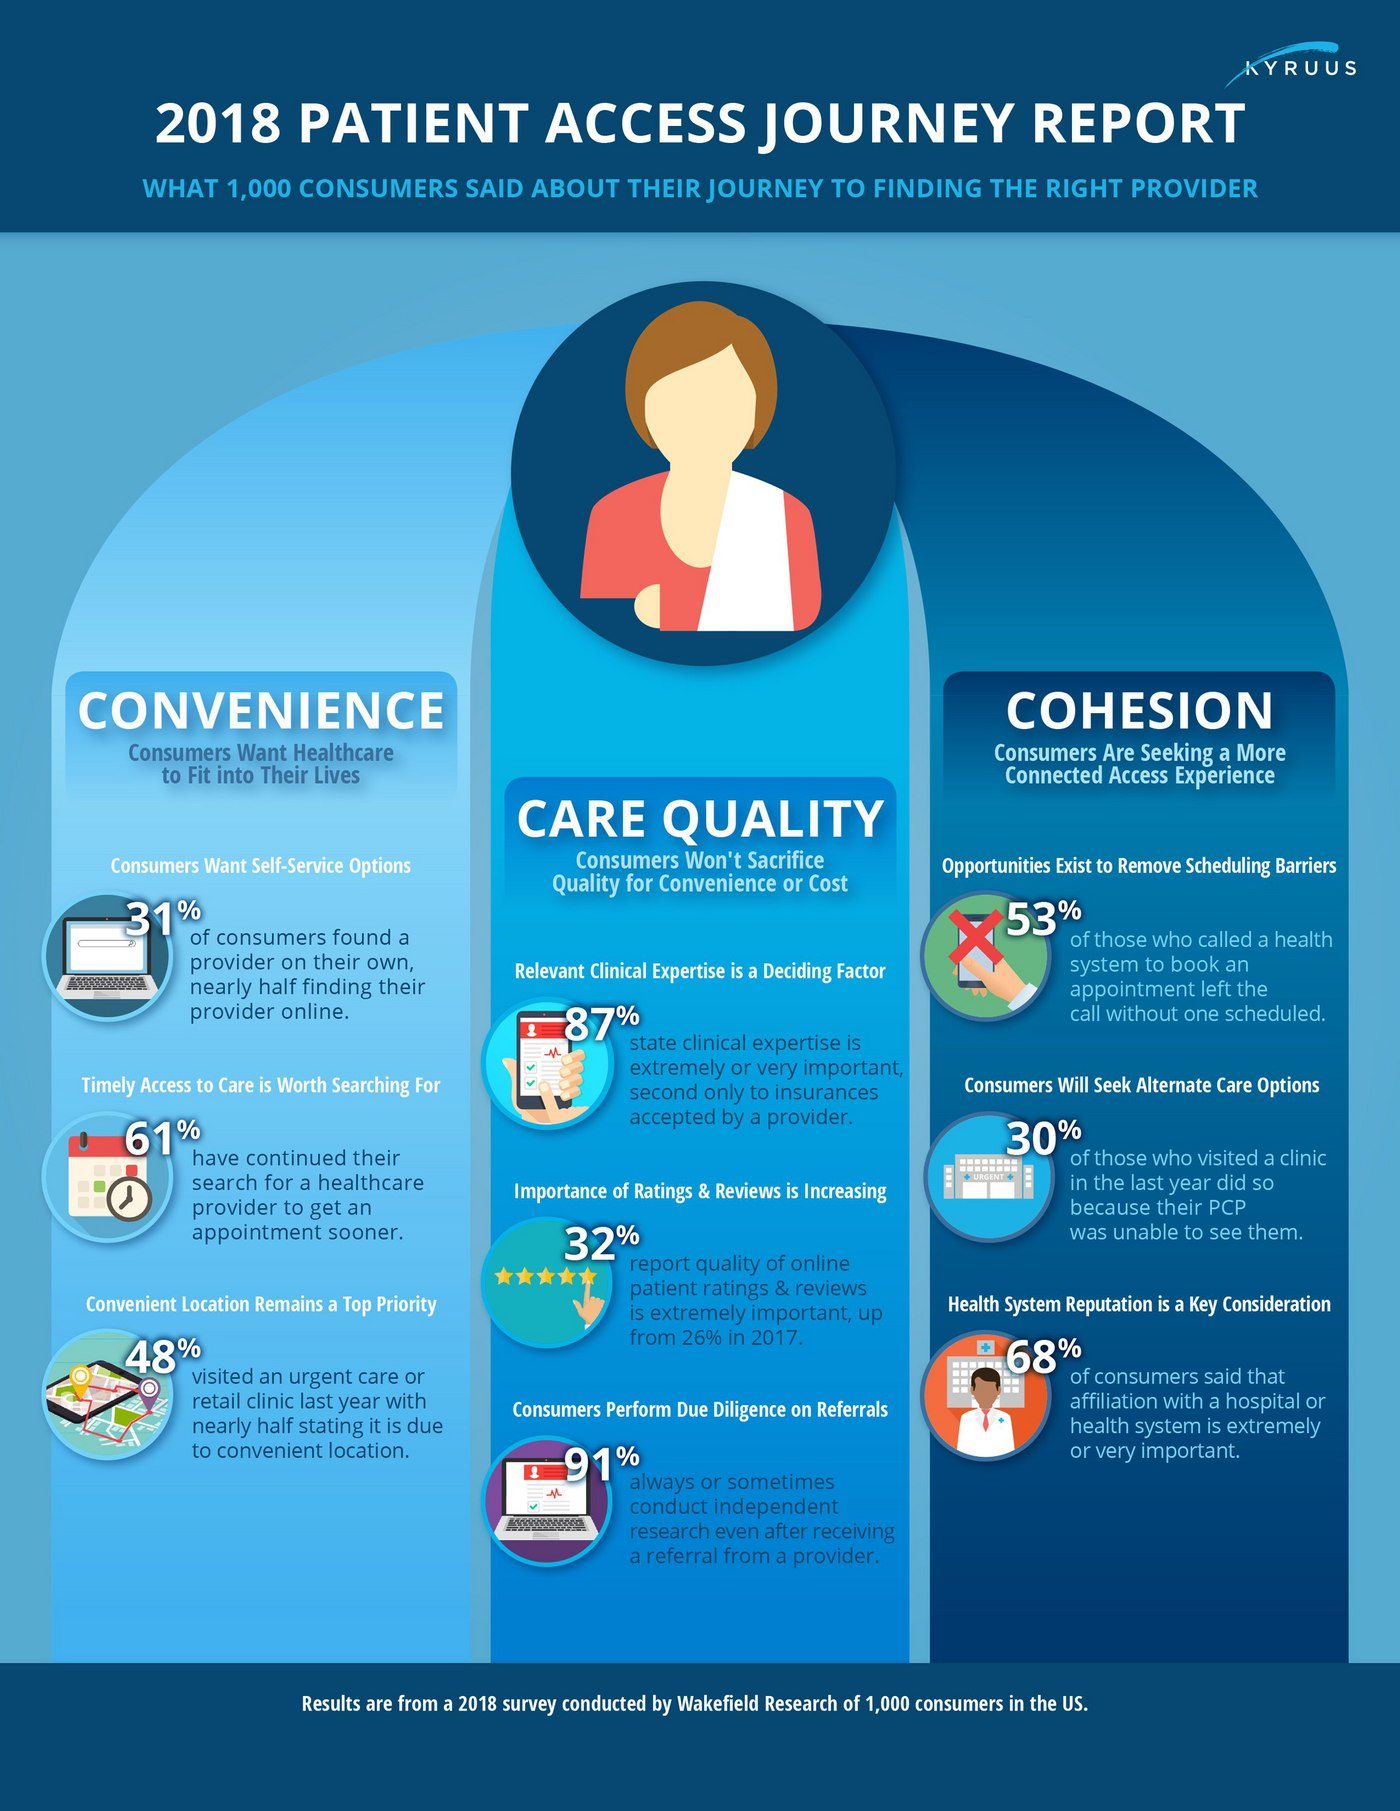 Patient Access Research Report - infographic by Kyruus - Patient Access Journey Research